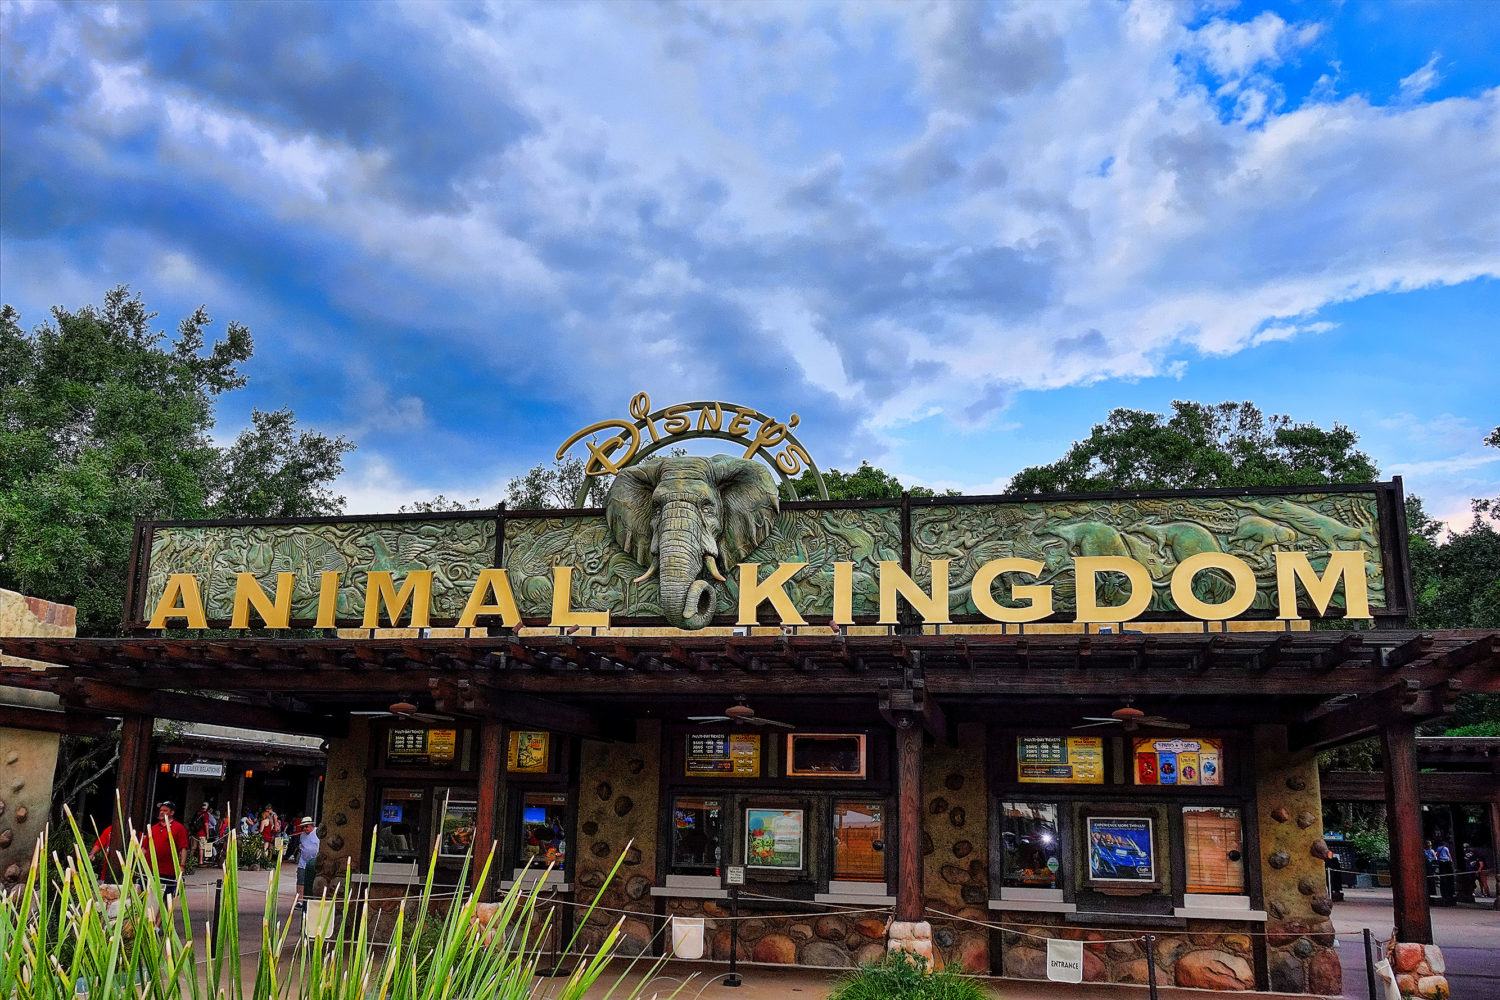 Entrada do animal kingdom